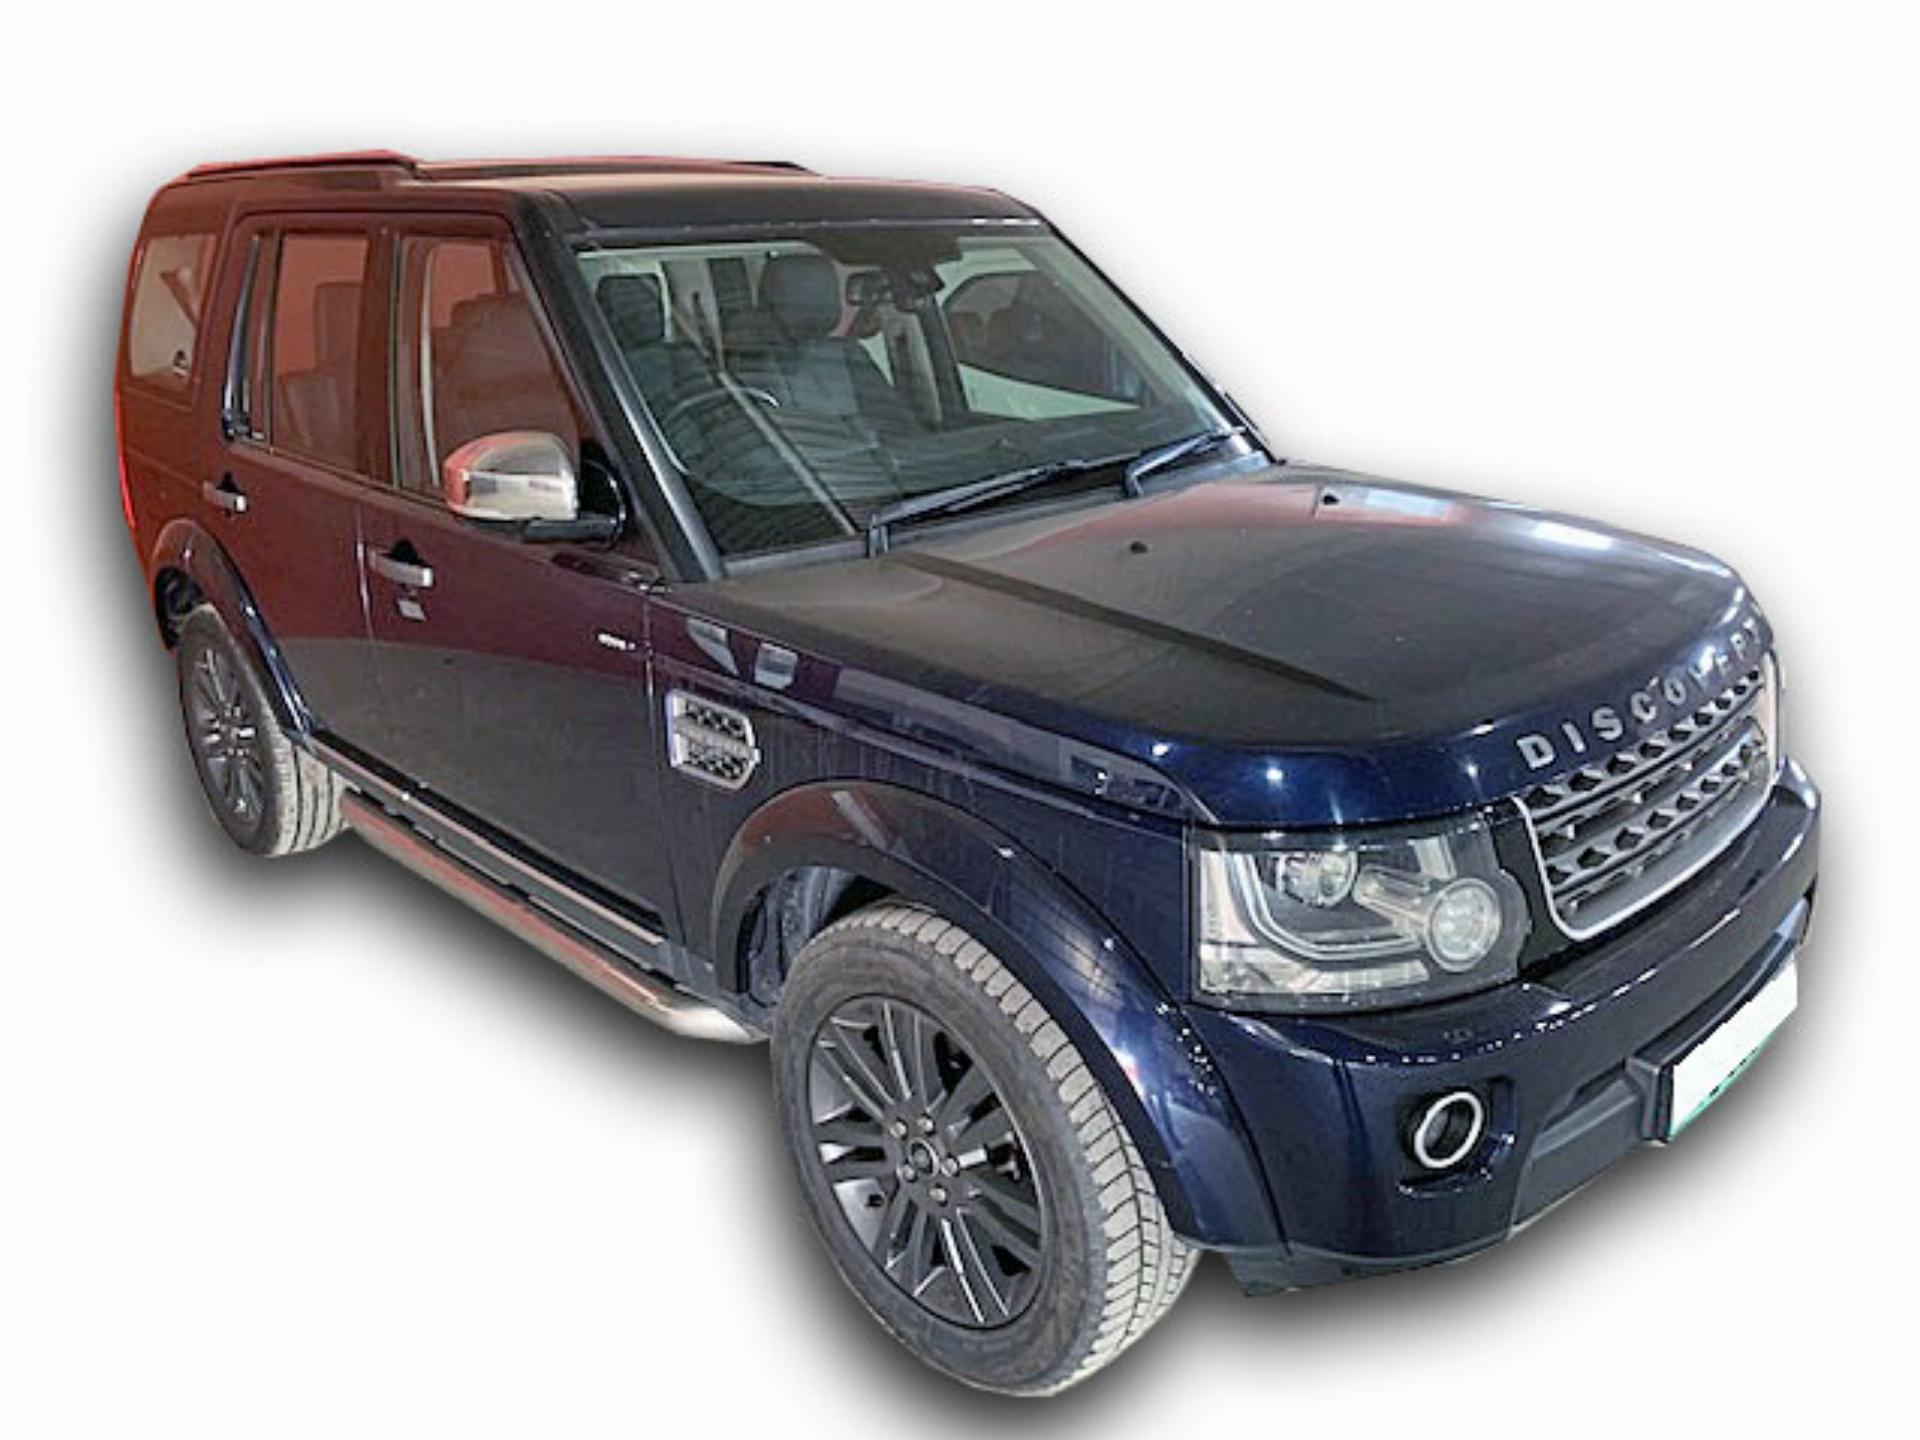 Land Rover Discovery 4 3.0 TD/